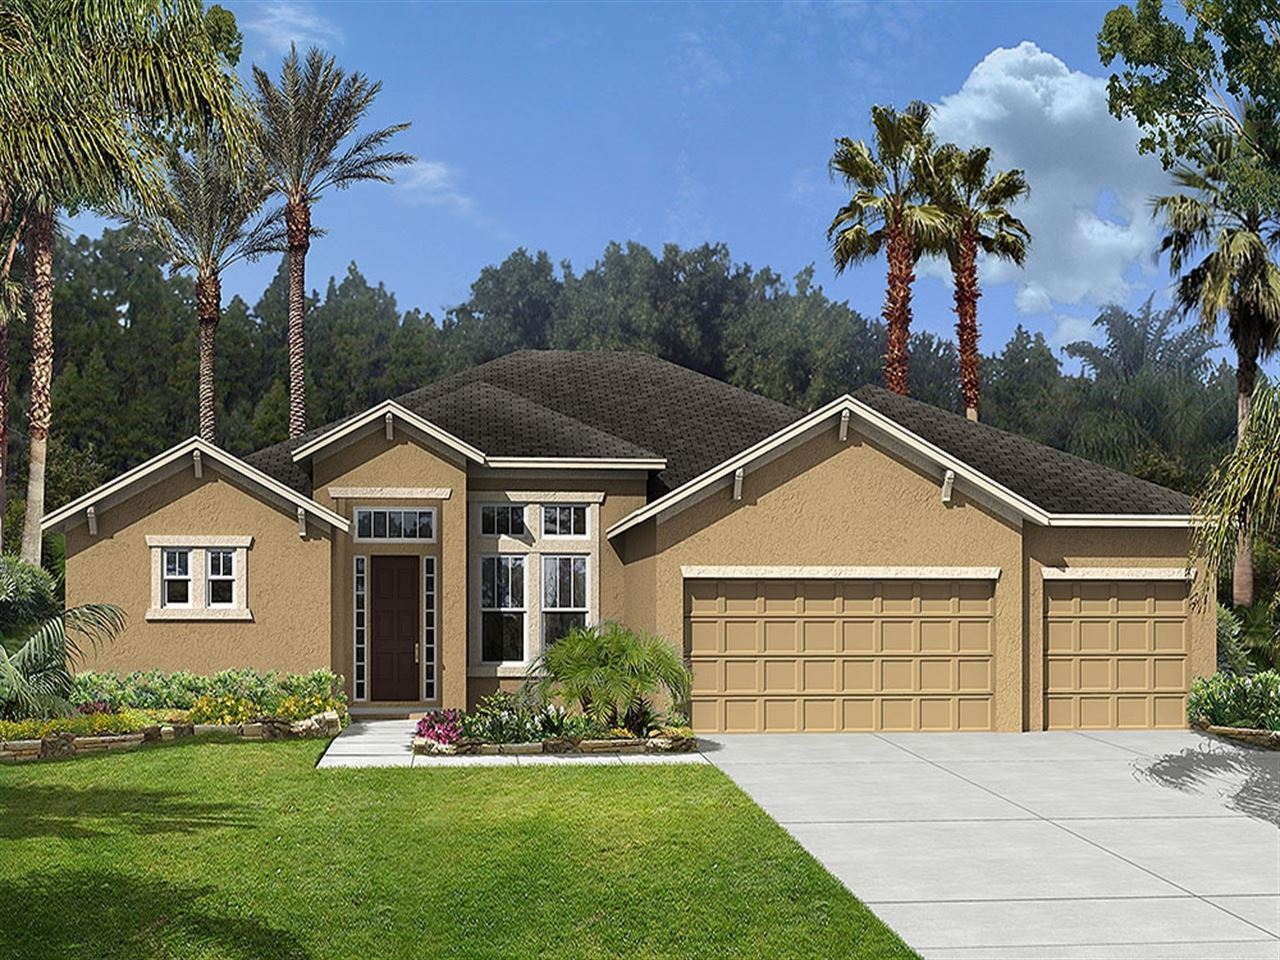 Sawgrass estate new homes in orlando fl by ryland homes for Ryland homes